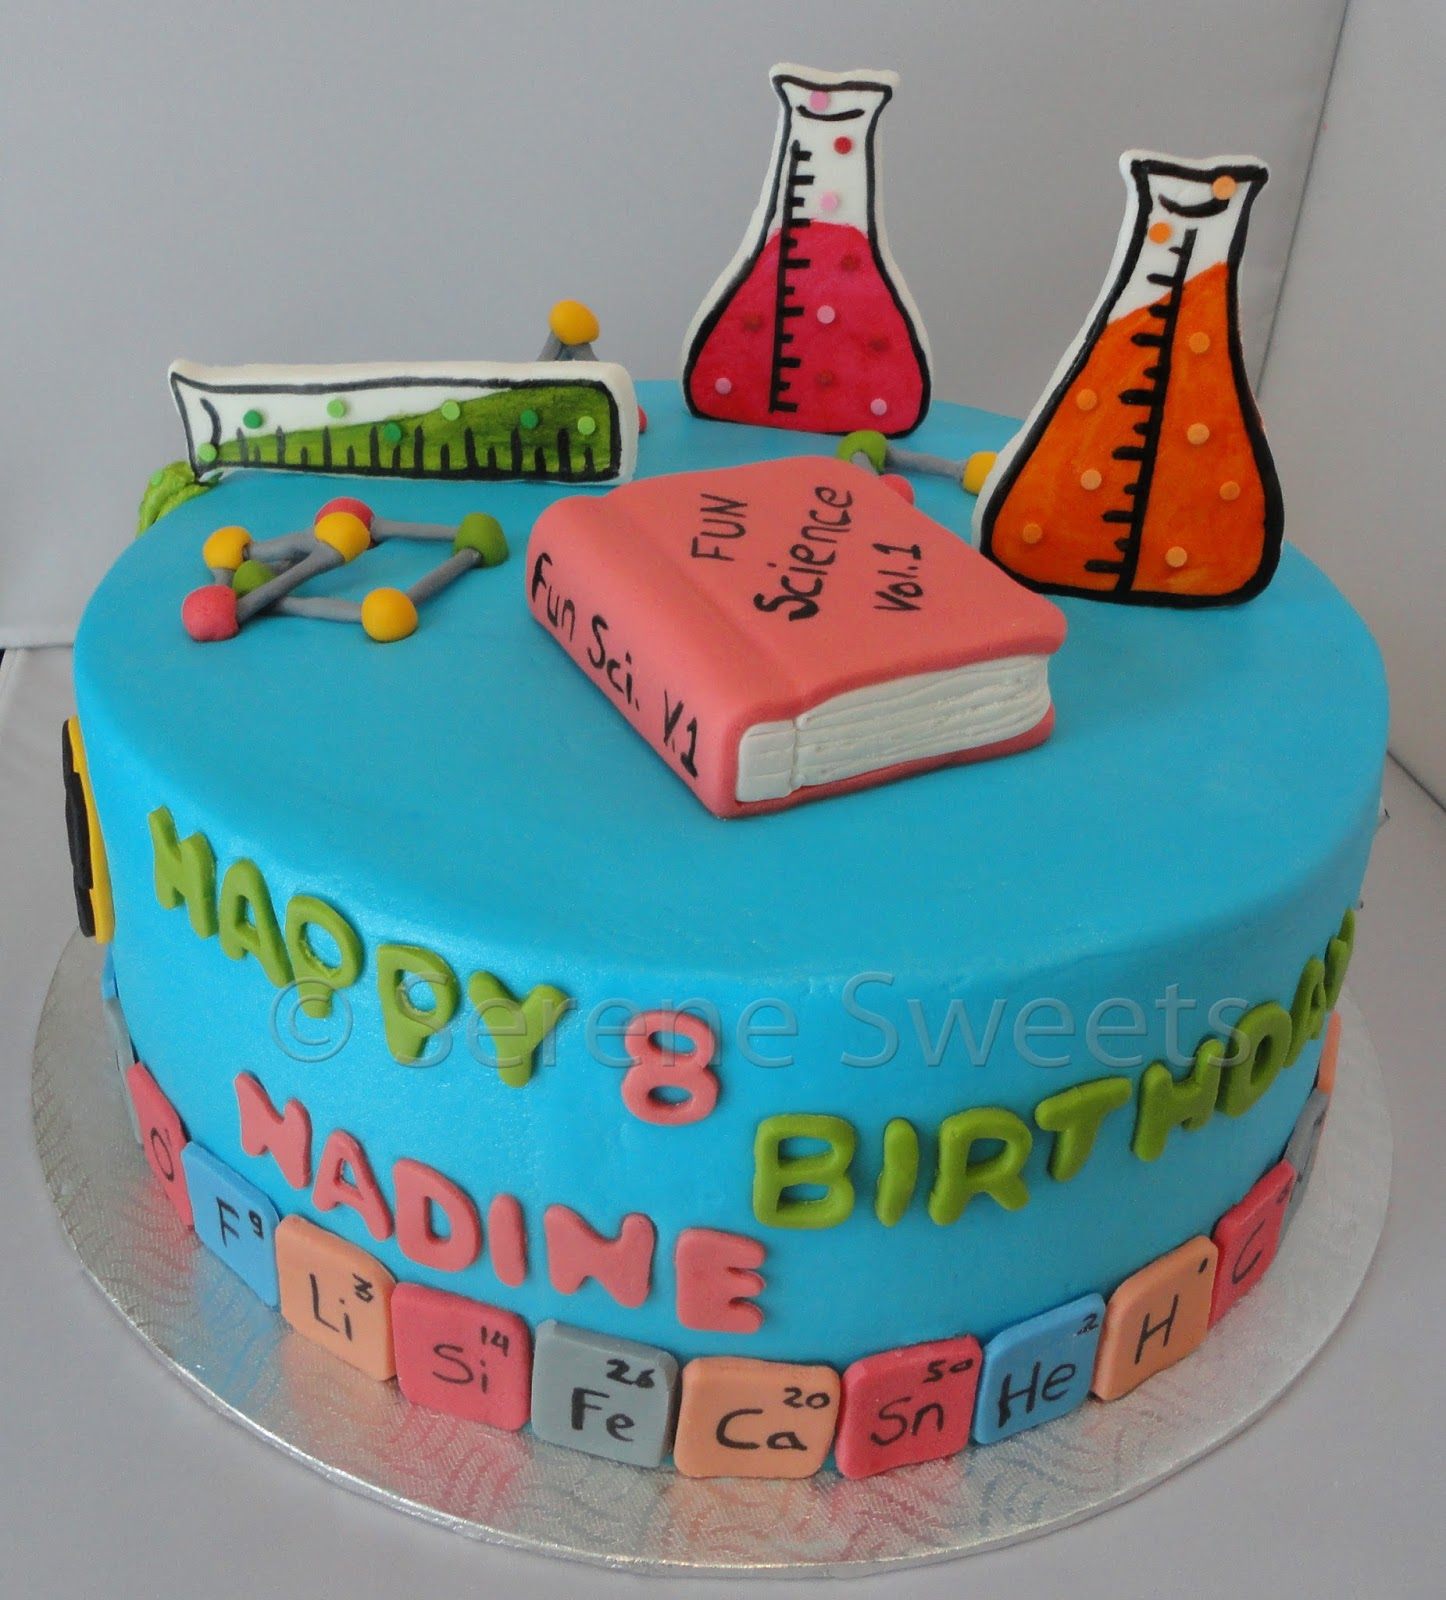 Serene sweets science cake what a fun birthday idea and a fun cake to go along with it meant to be explored with many elements from the periodic table along the bottom gamestrikefo Choice Image